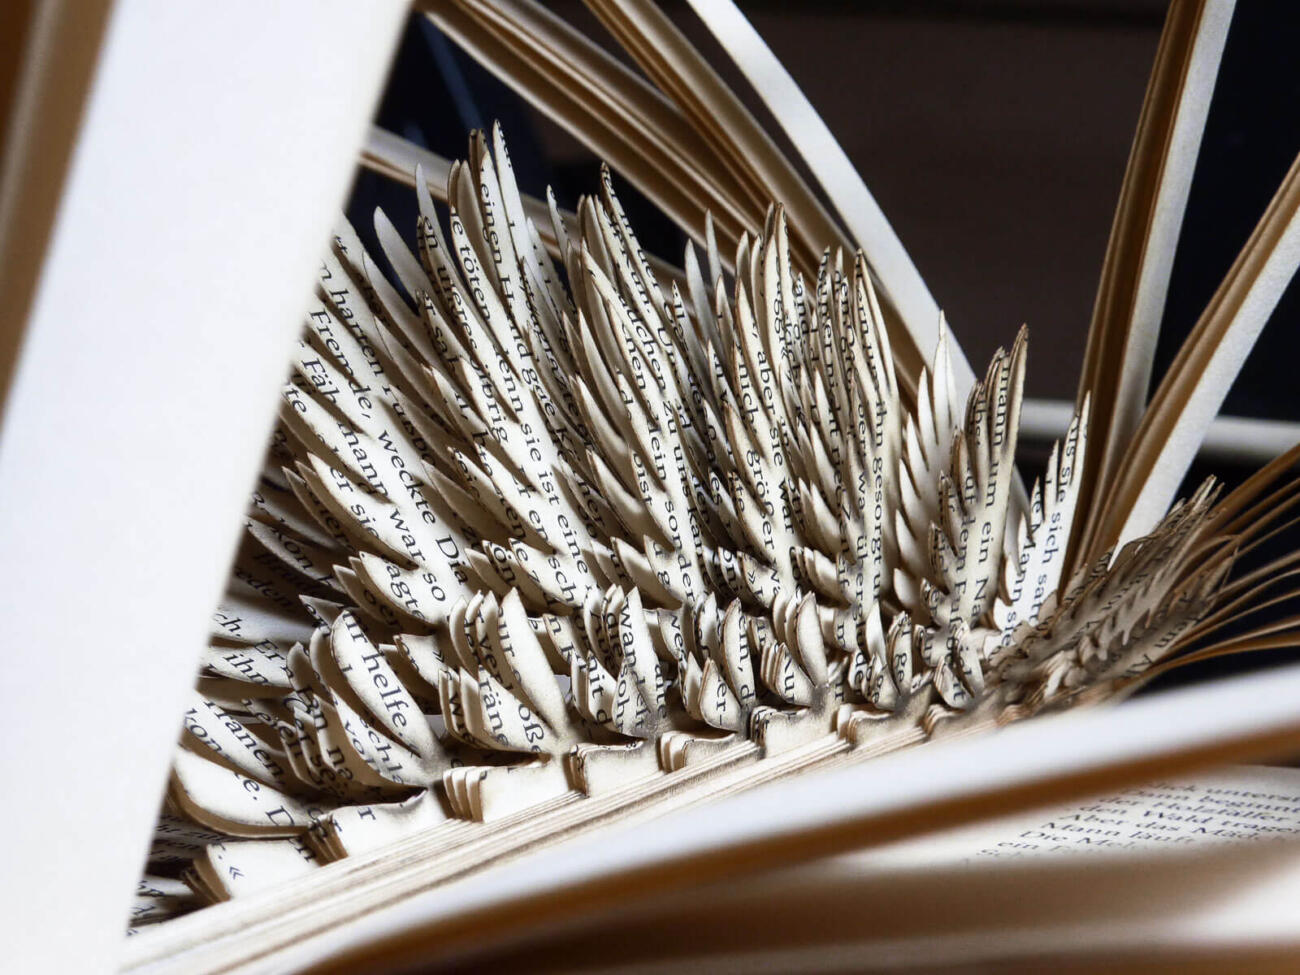 Lasercut in Book - Bird wing shape detail - By Robin Hanhart